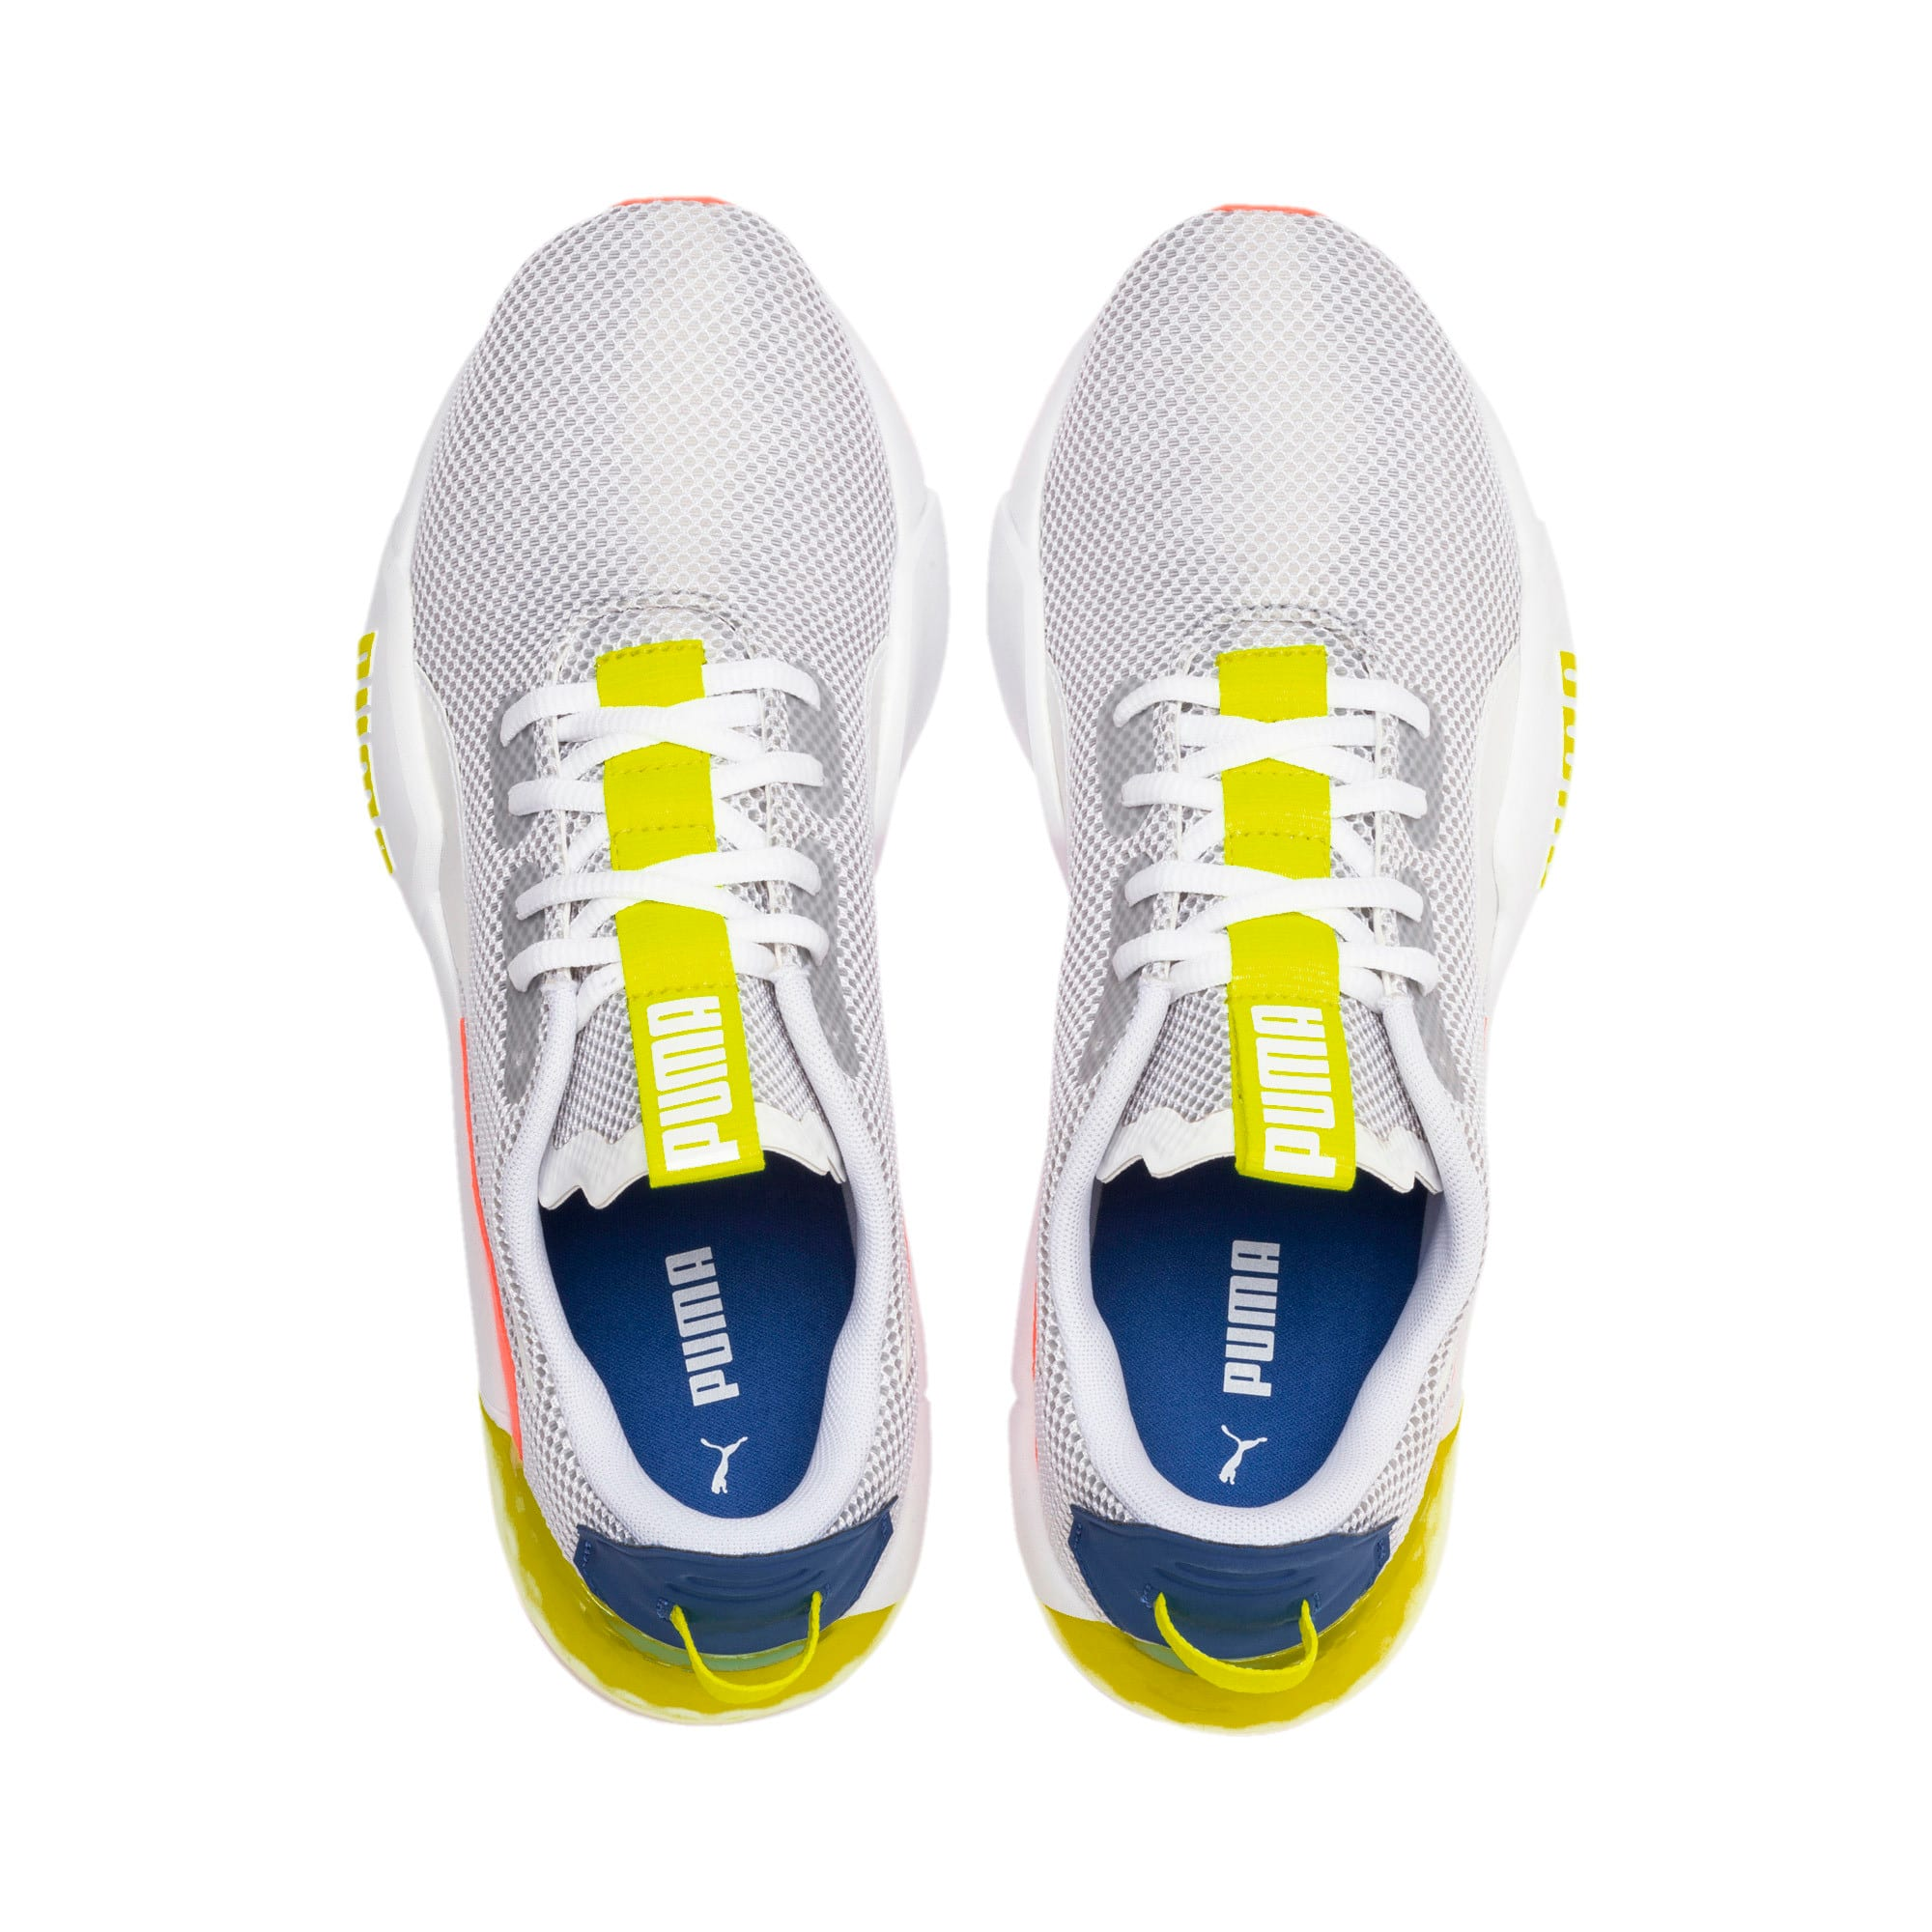 Thumbnail 7 of CELL Phase Men's Training Shoes, White-GalaxyBlue-YellowAlert, medium